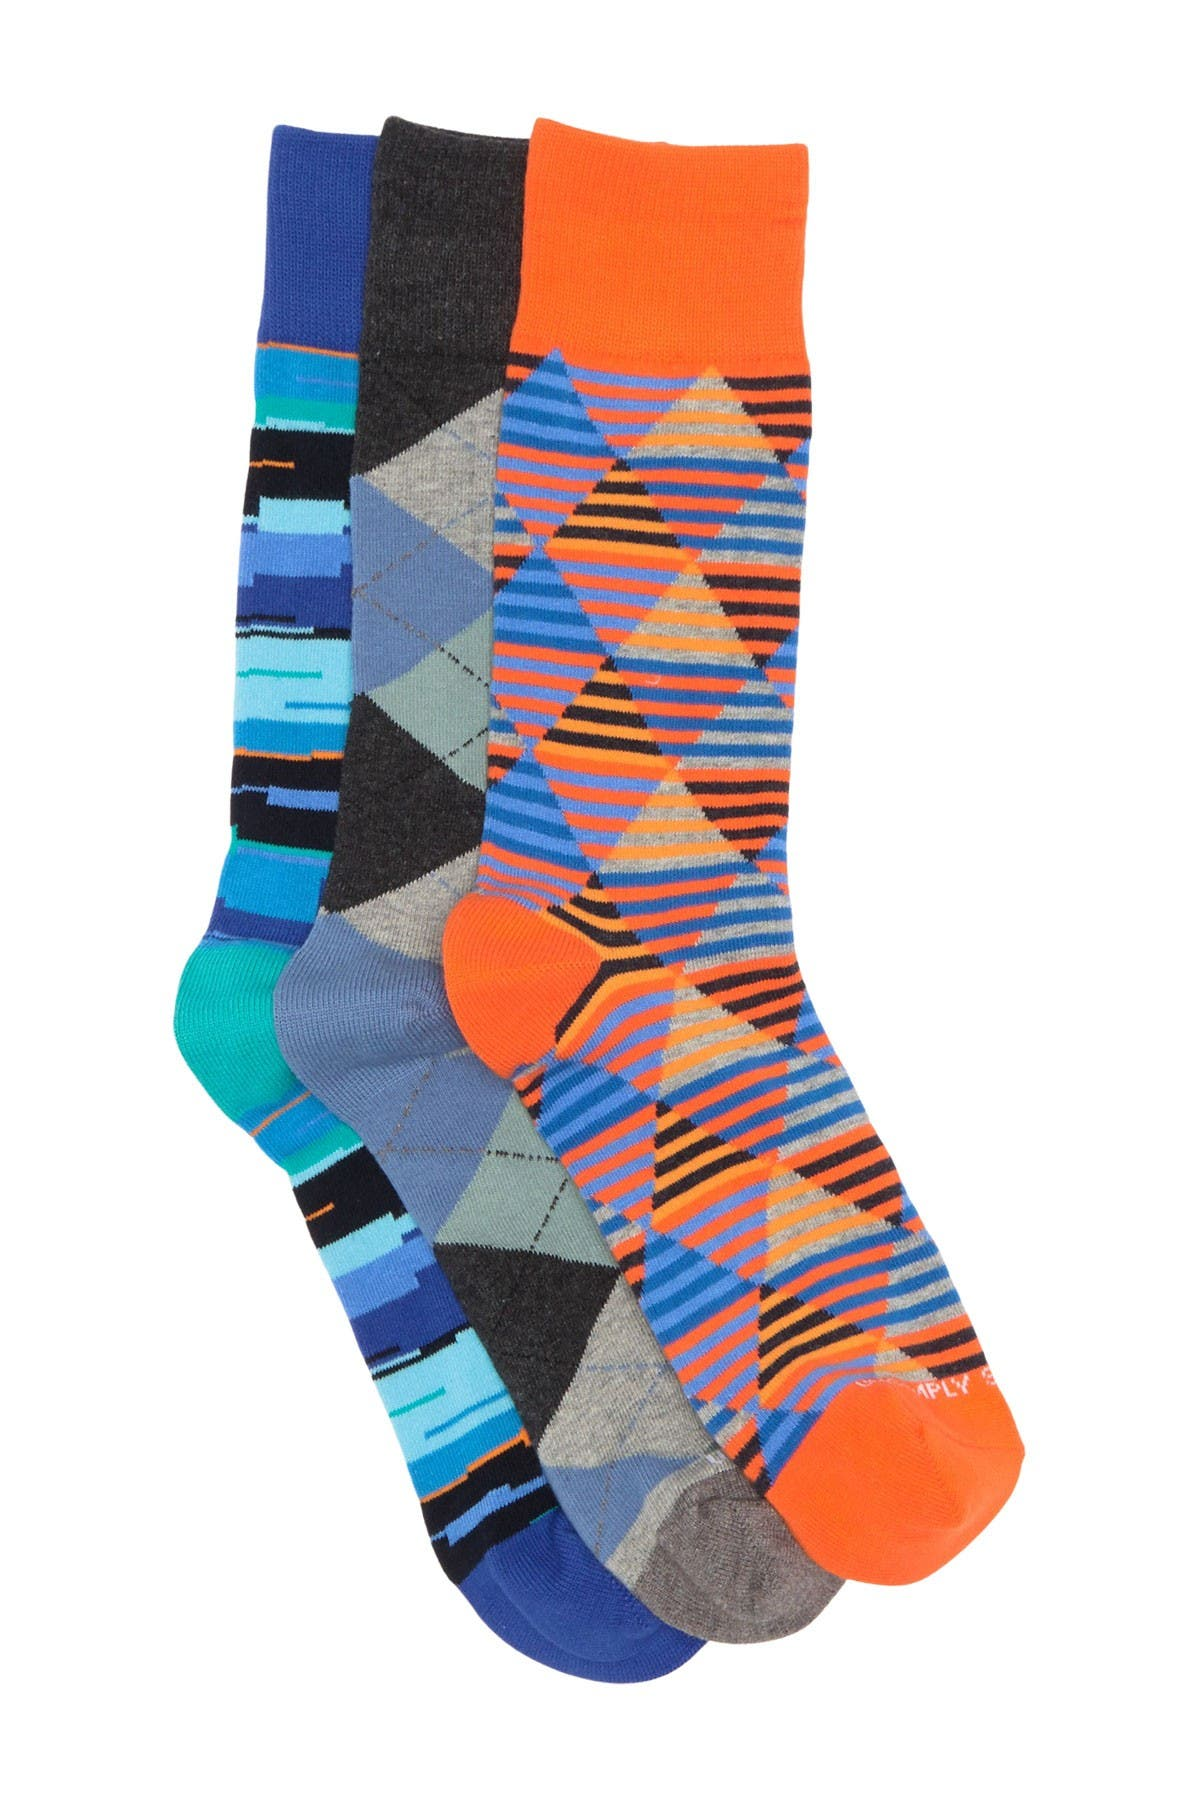 Image of Unsimply Stitched Assorted Print Crew Sock - Pack of 3